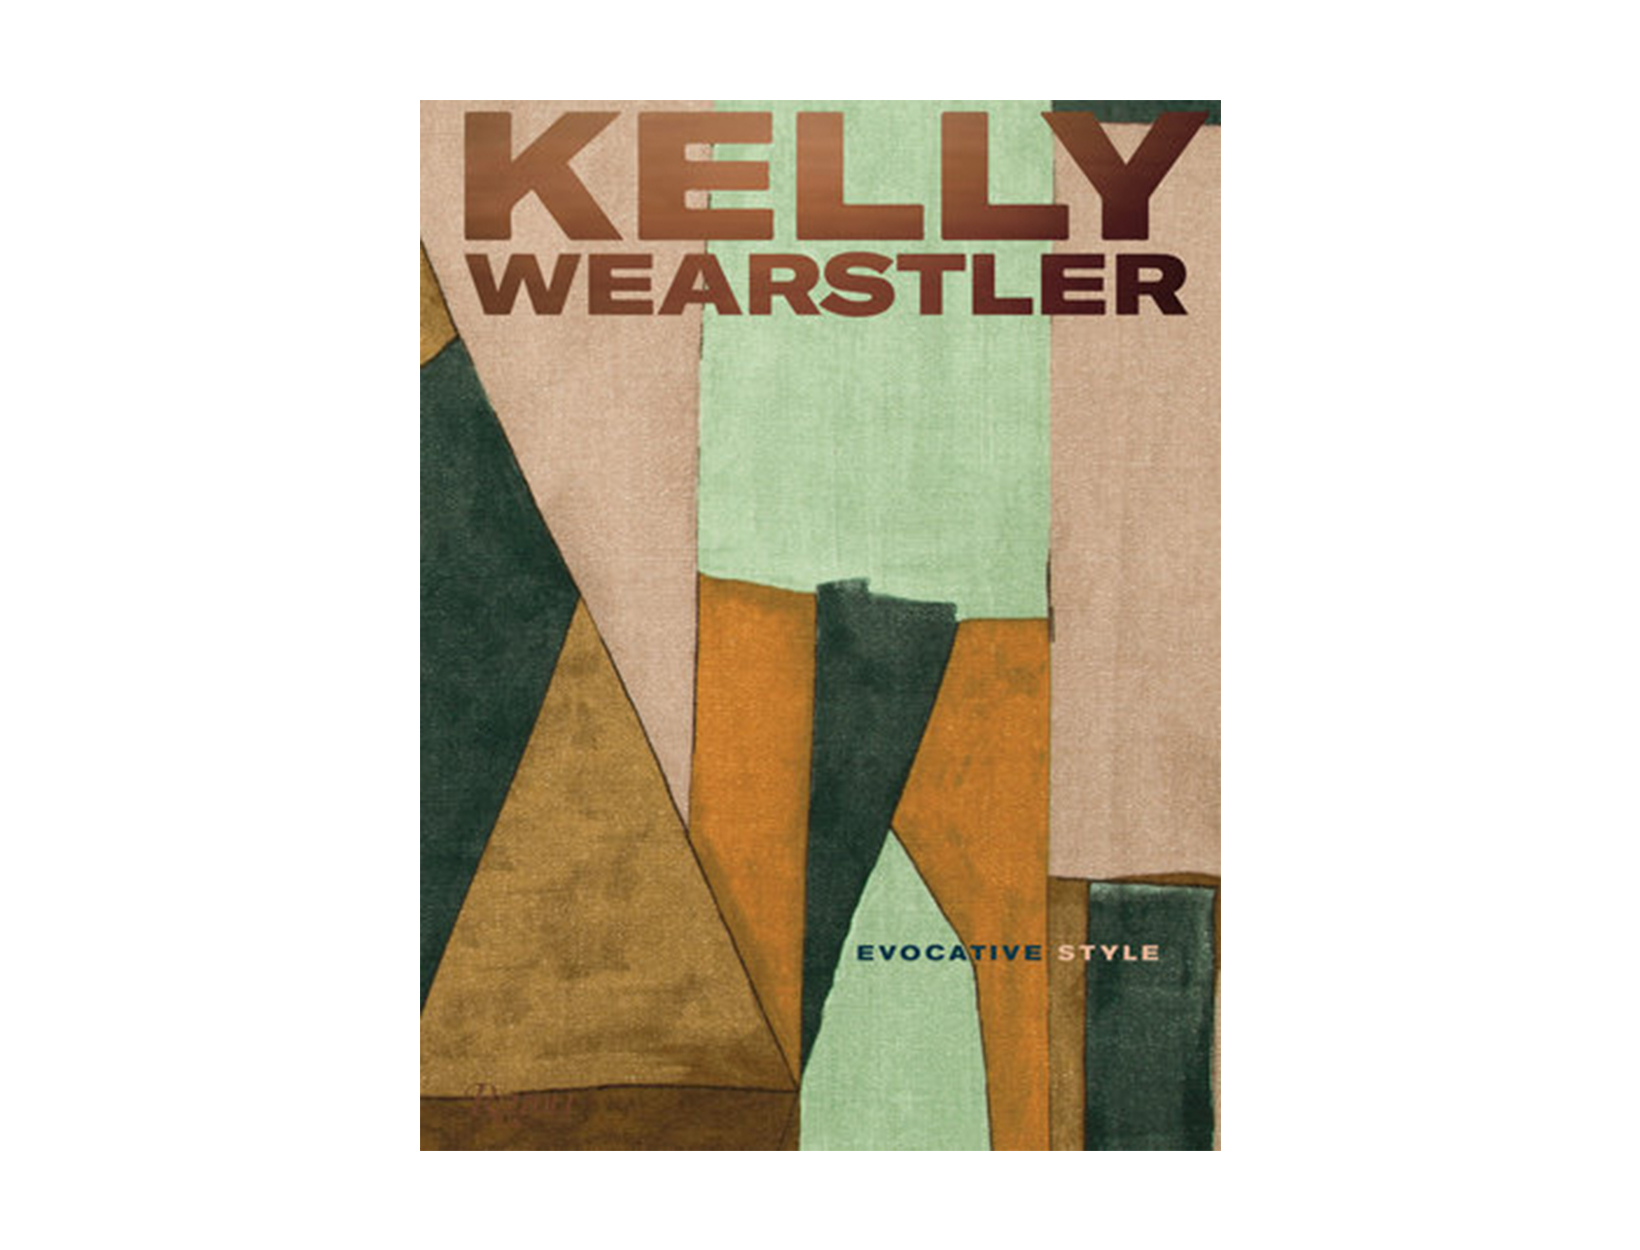 <em>Kelly Wearstler: Evocative Style</em> by Kelly Wearstler